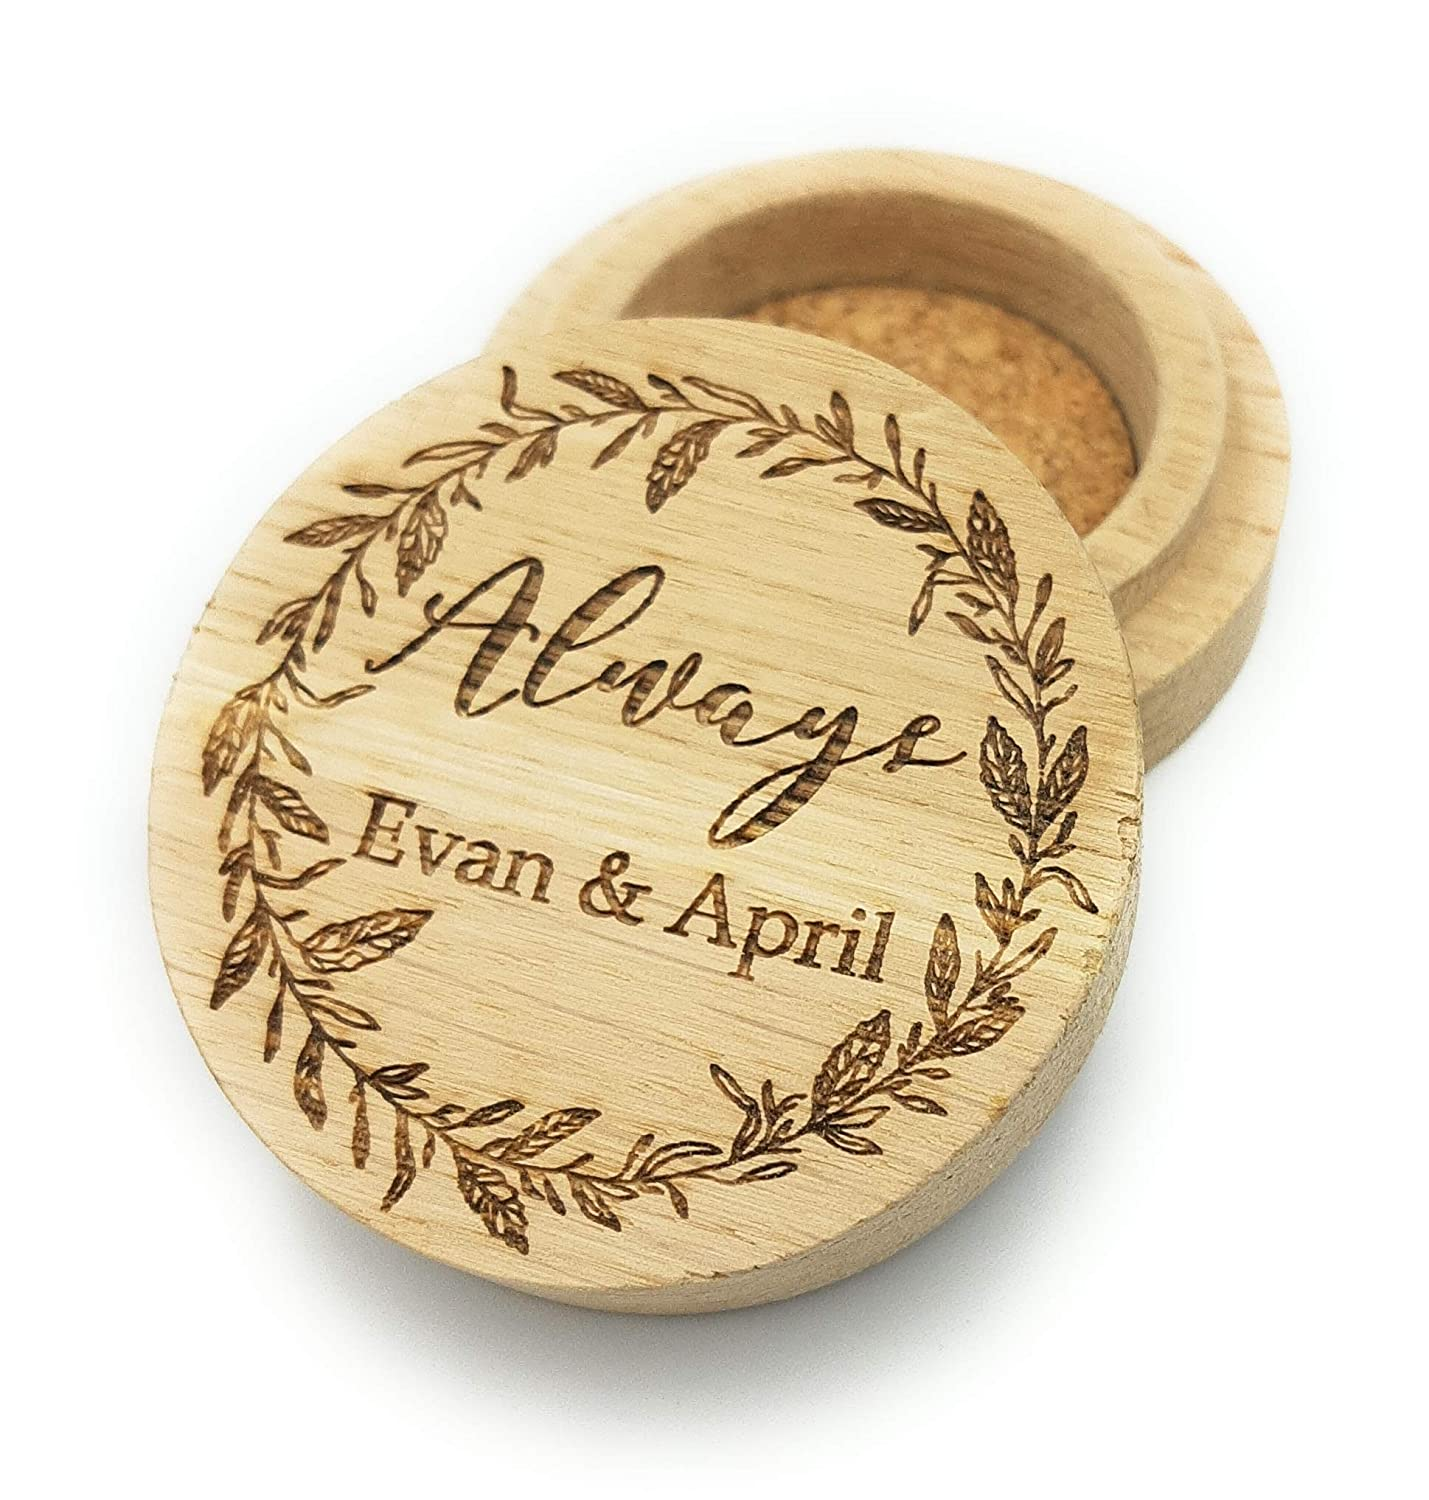 Personalized ring box Ultra-Cheap Deals Trust b wooden wedding